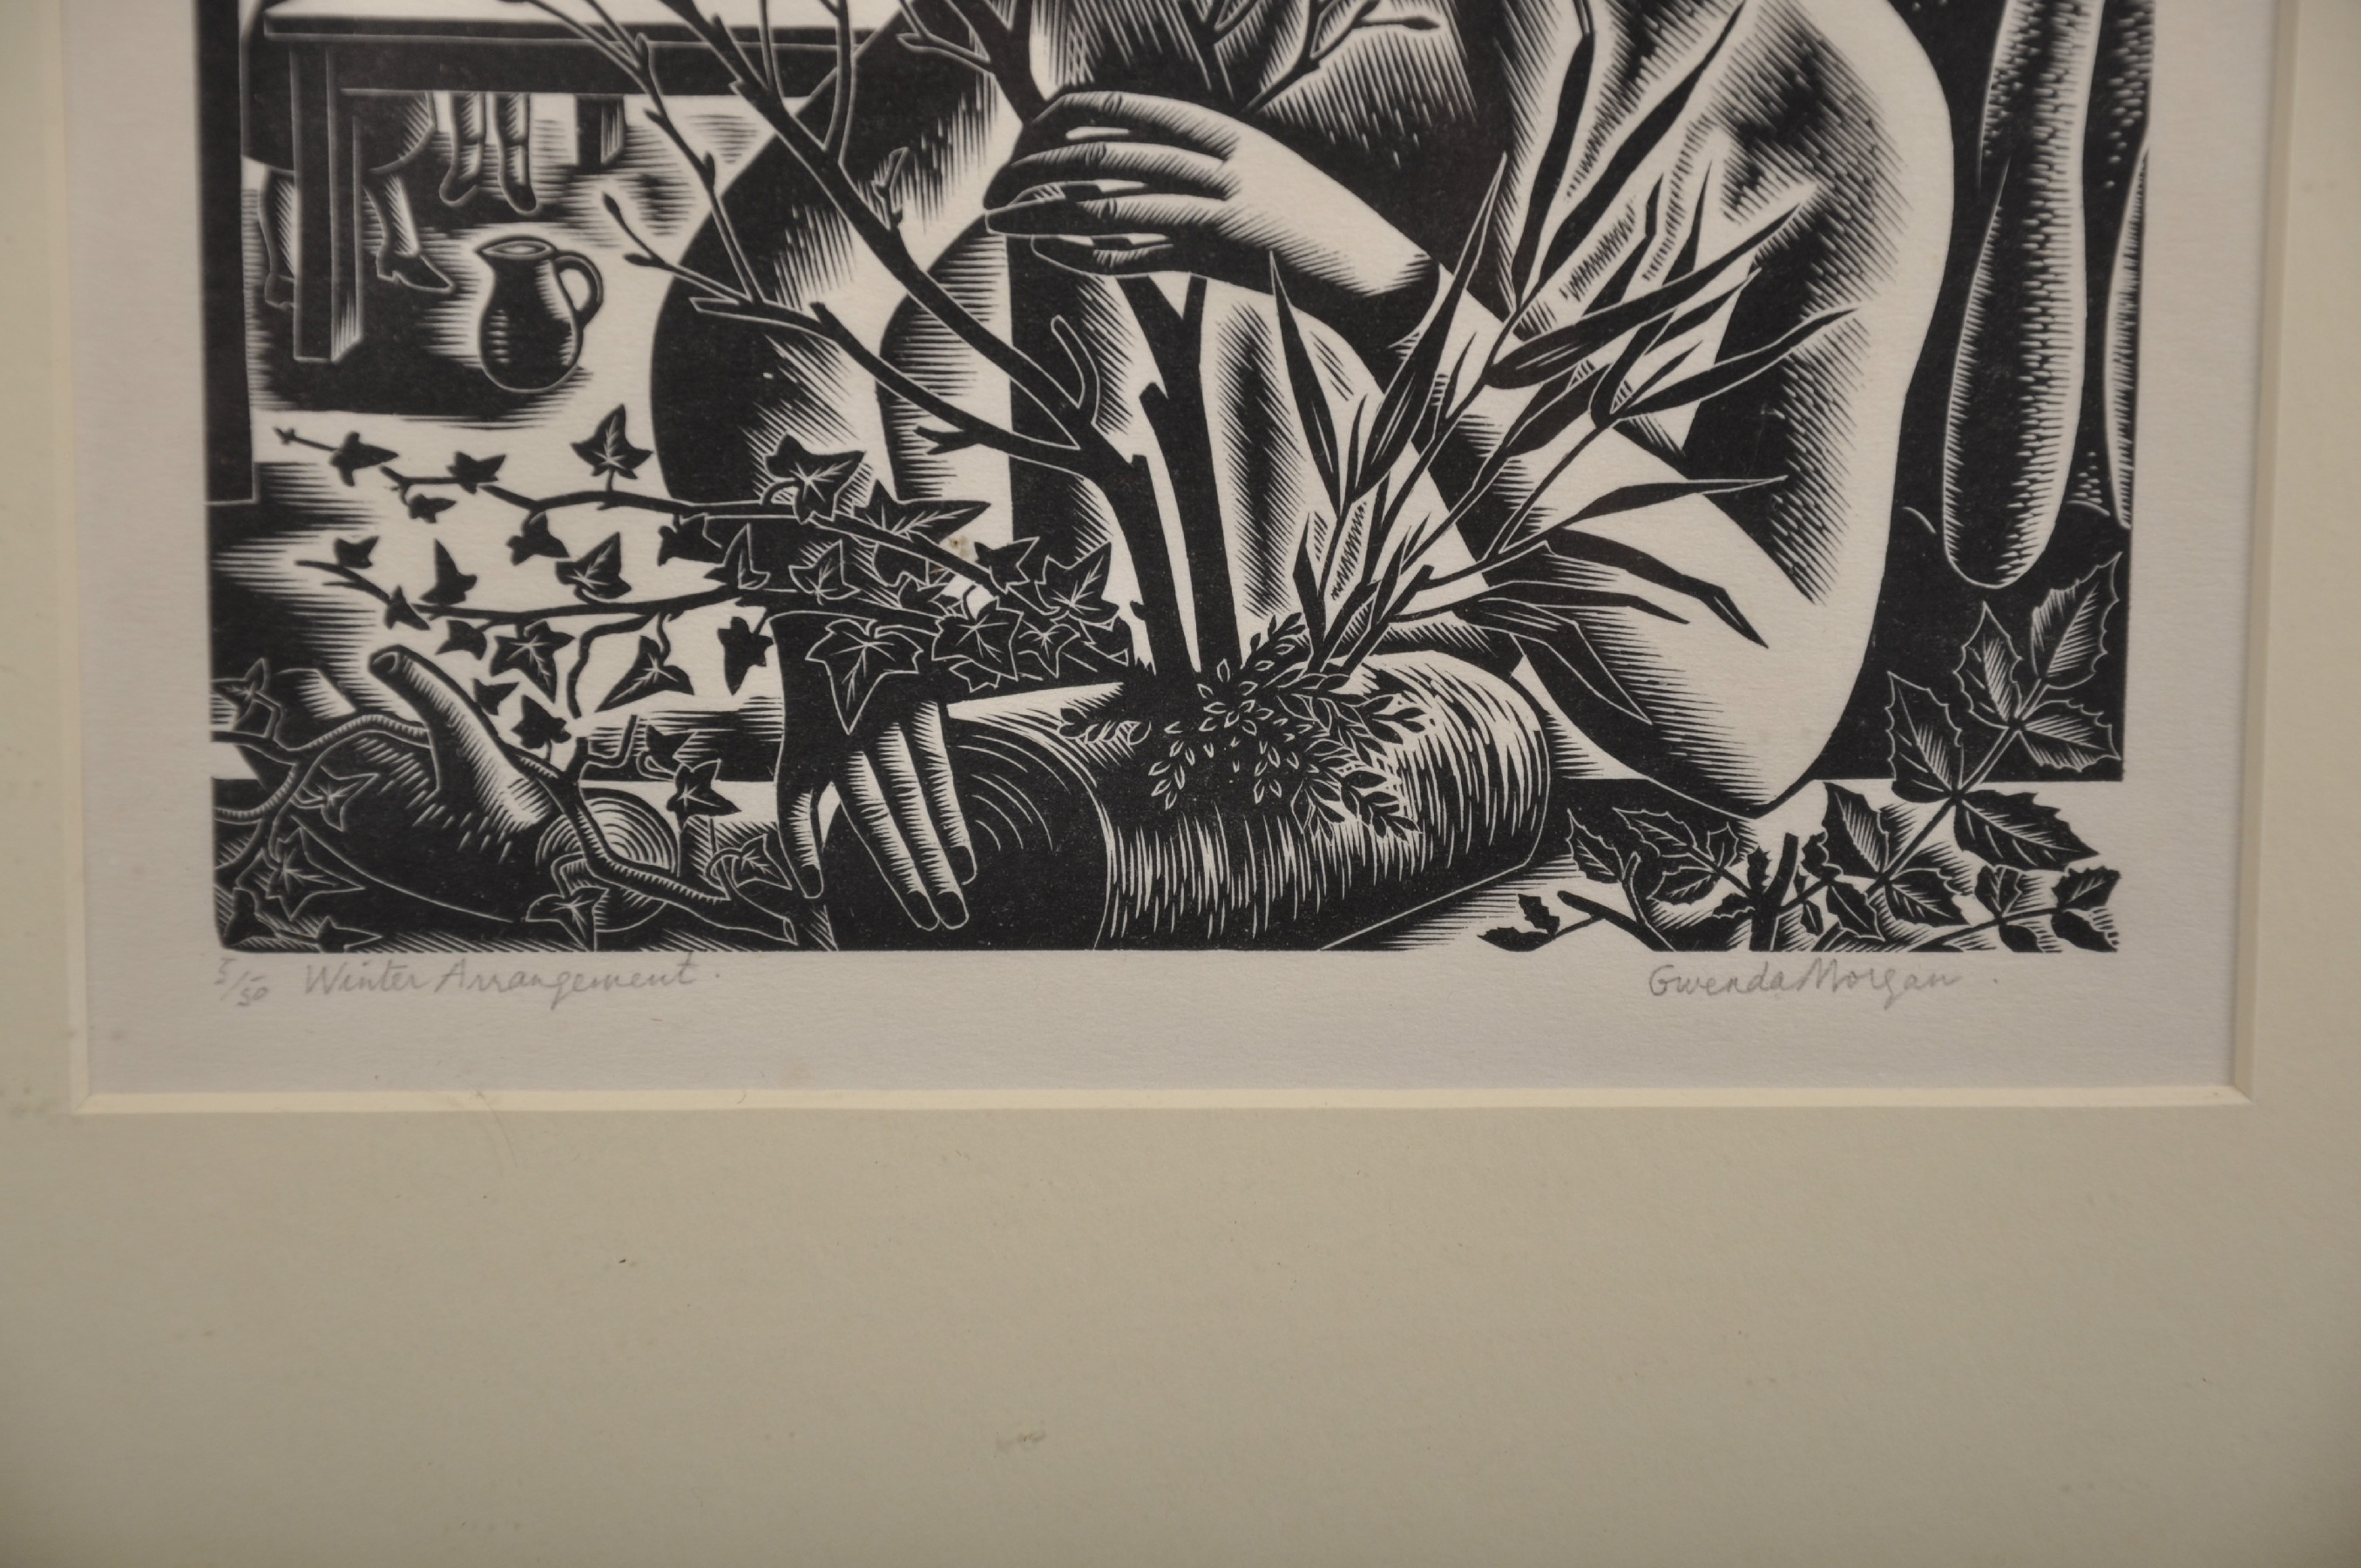 """Gwenda Morgan (1908-1991) British. """"Winter Arrangement"""", Woodcut, Signed, Inscribed and Numbered 5/ - Image 3 of 5"""